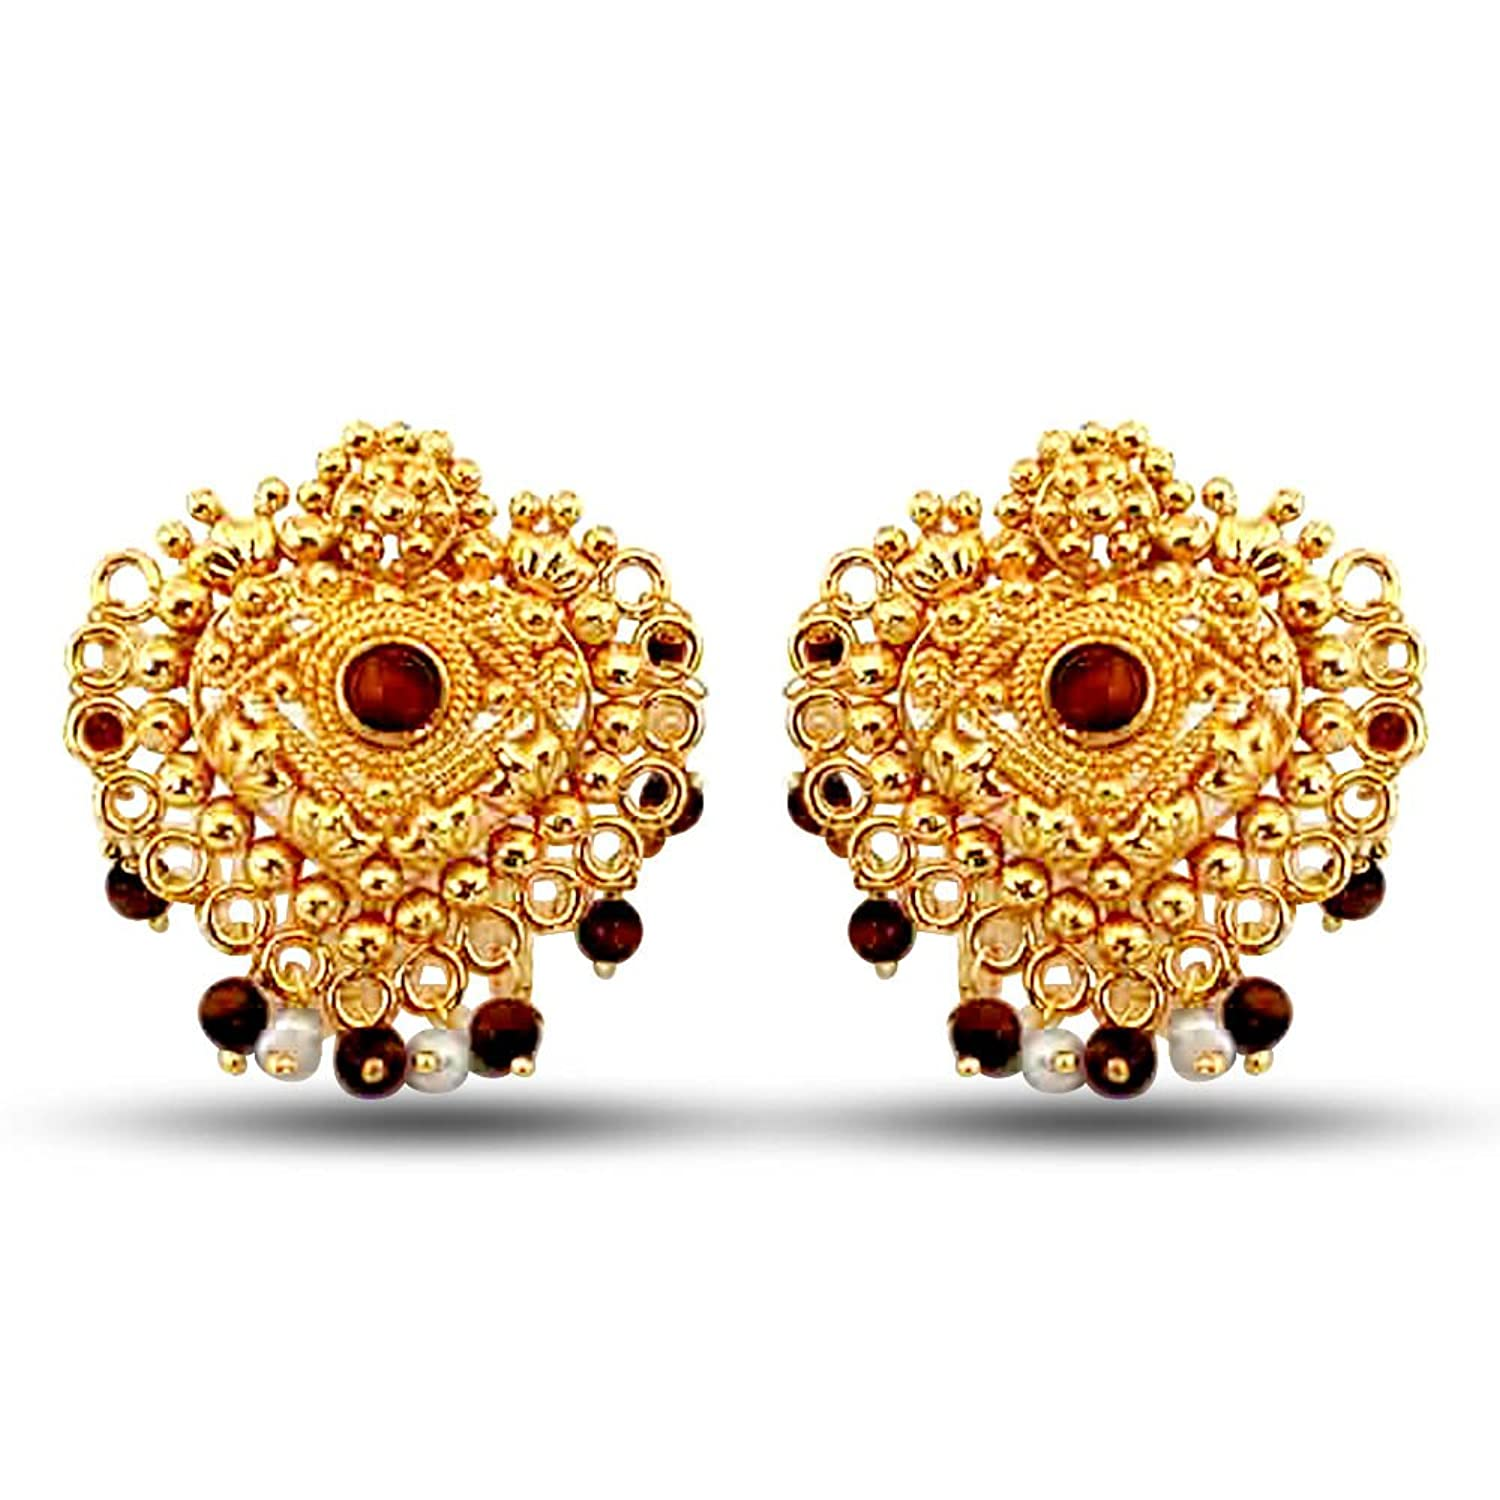 South Indian Temple Jewellery: Buy South Indian Temple Jewellery ...